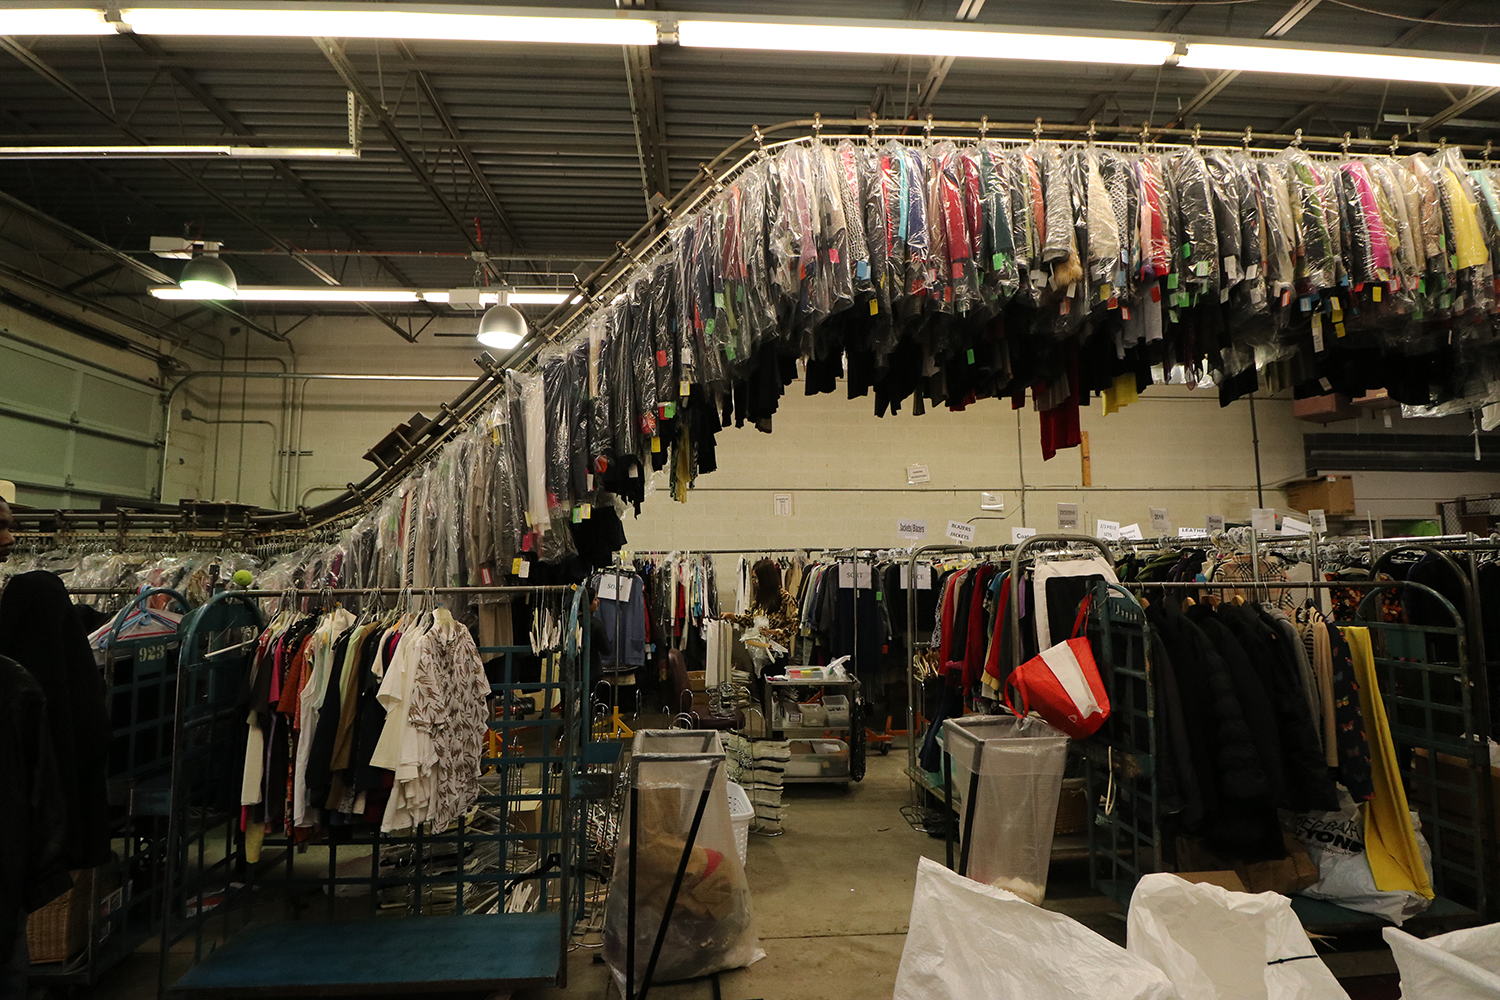 In mid-September, the NCJW/Cleveland warehouse was filled with items that will be available for purchase during Designer Dress Days in October. Photo by Michael C. Butz